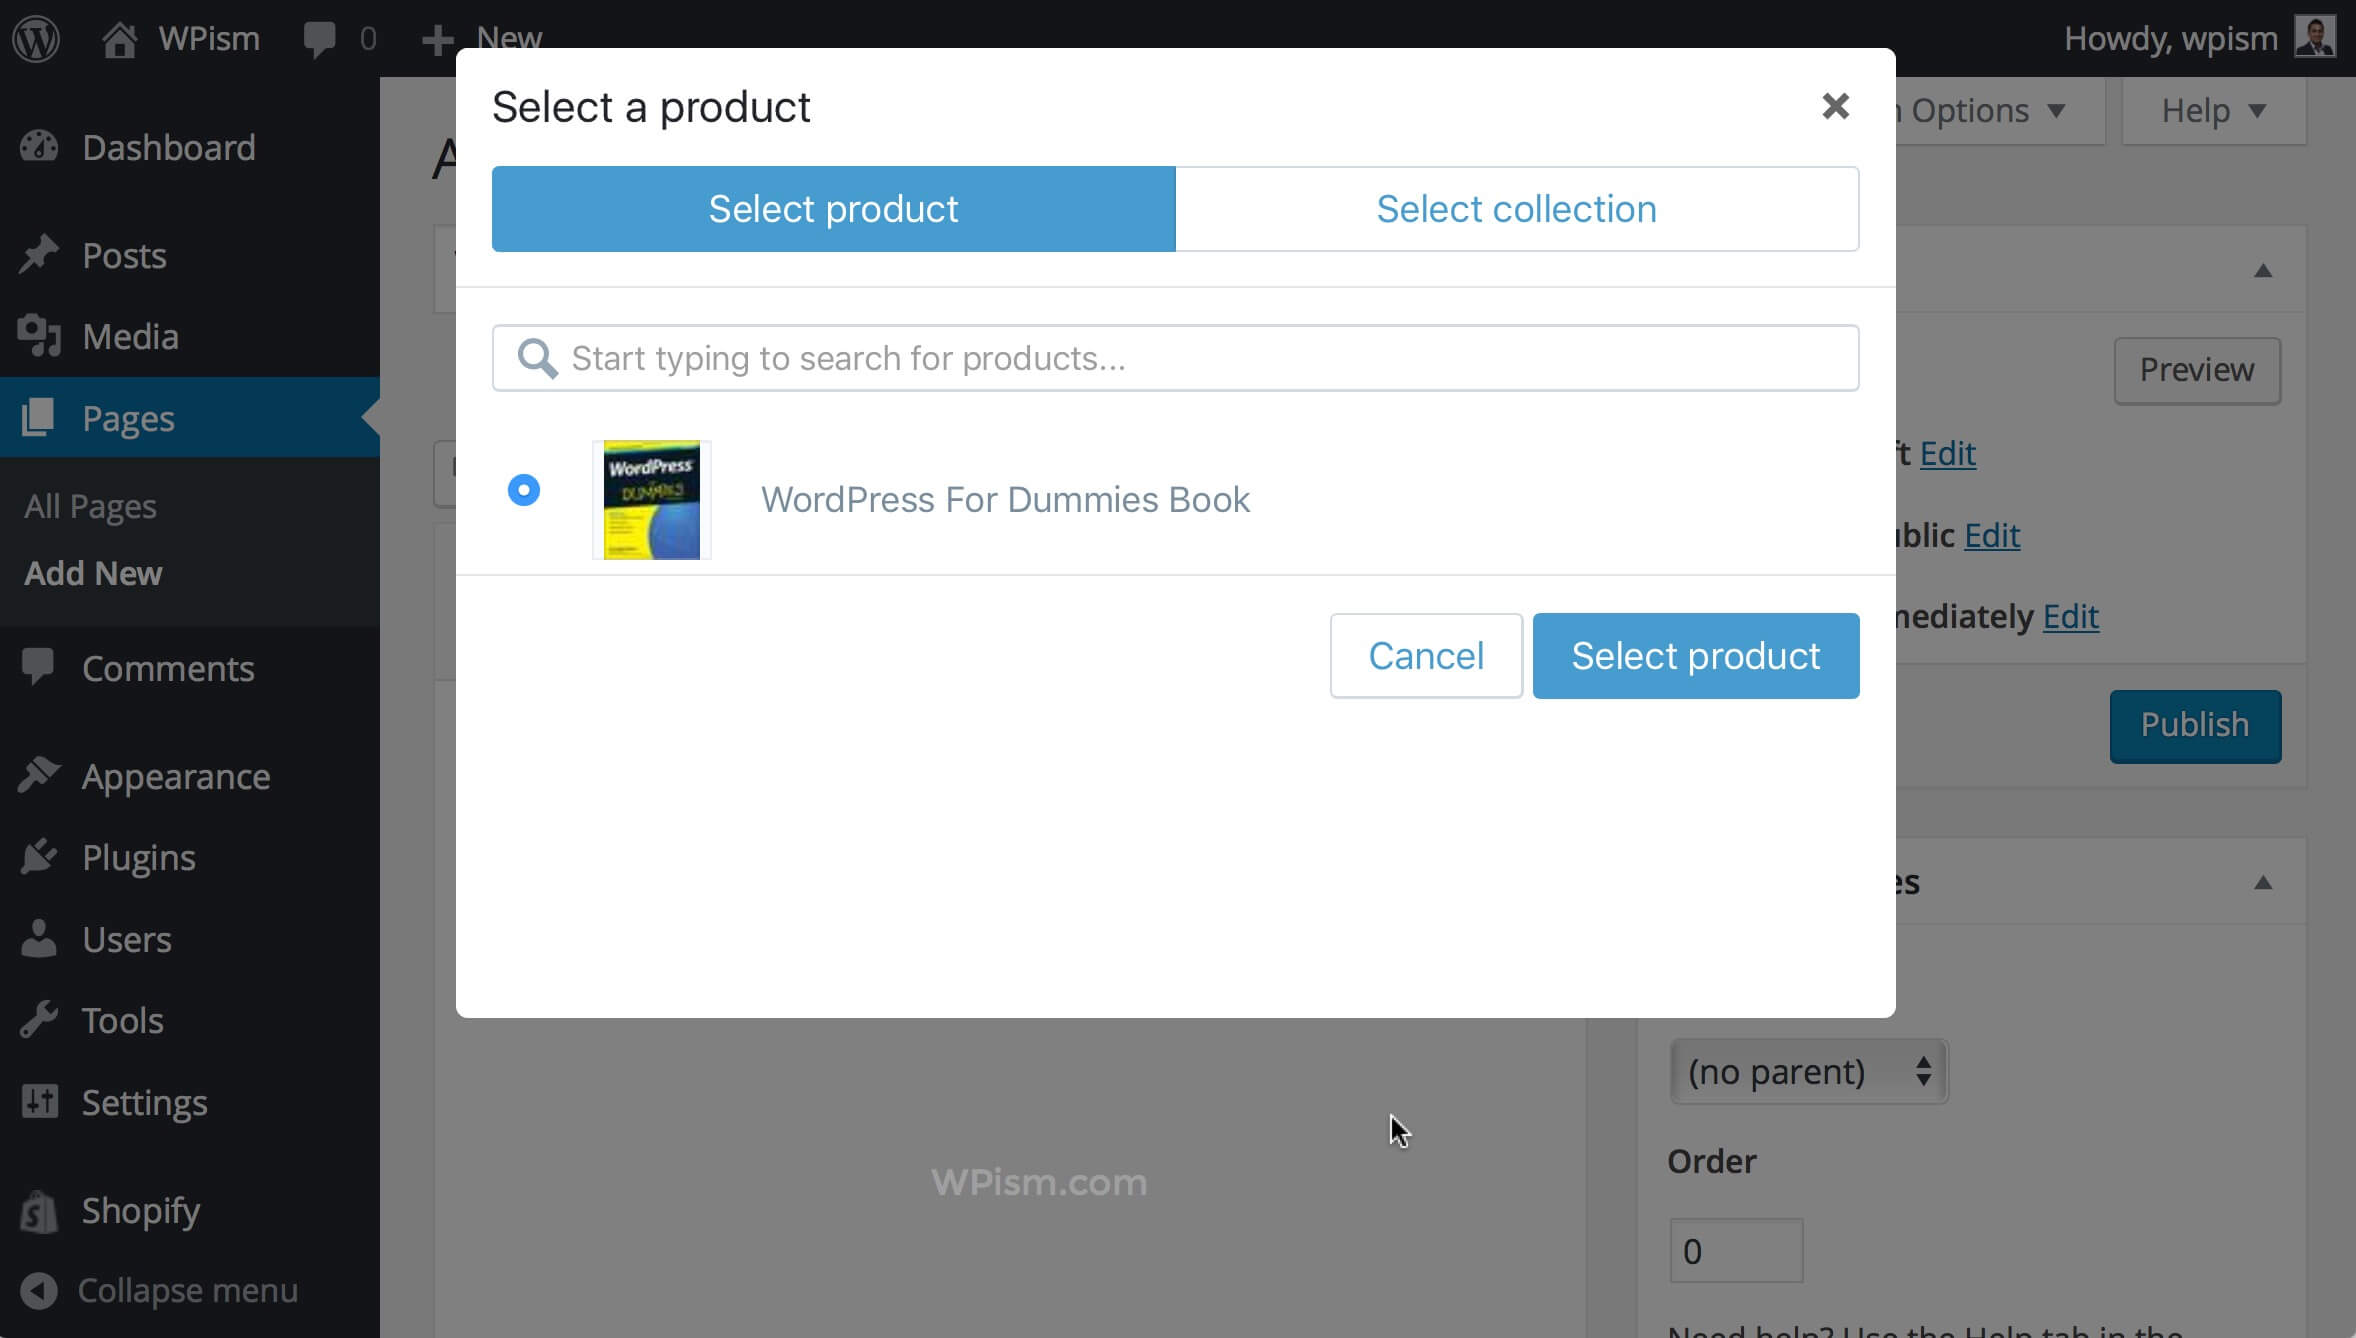 Select Products Collection Shopify WordPress Editor